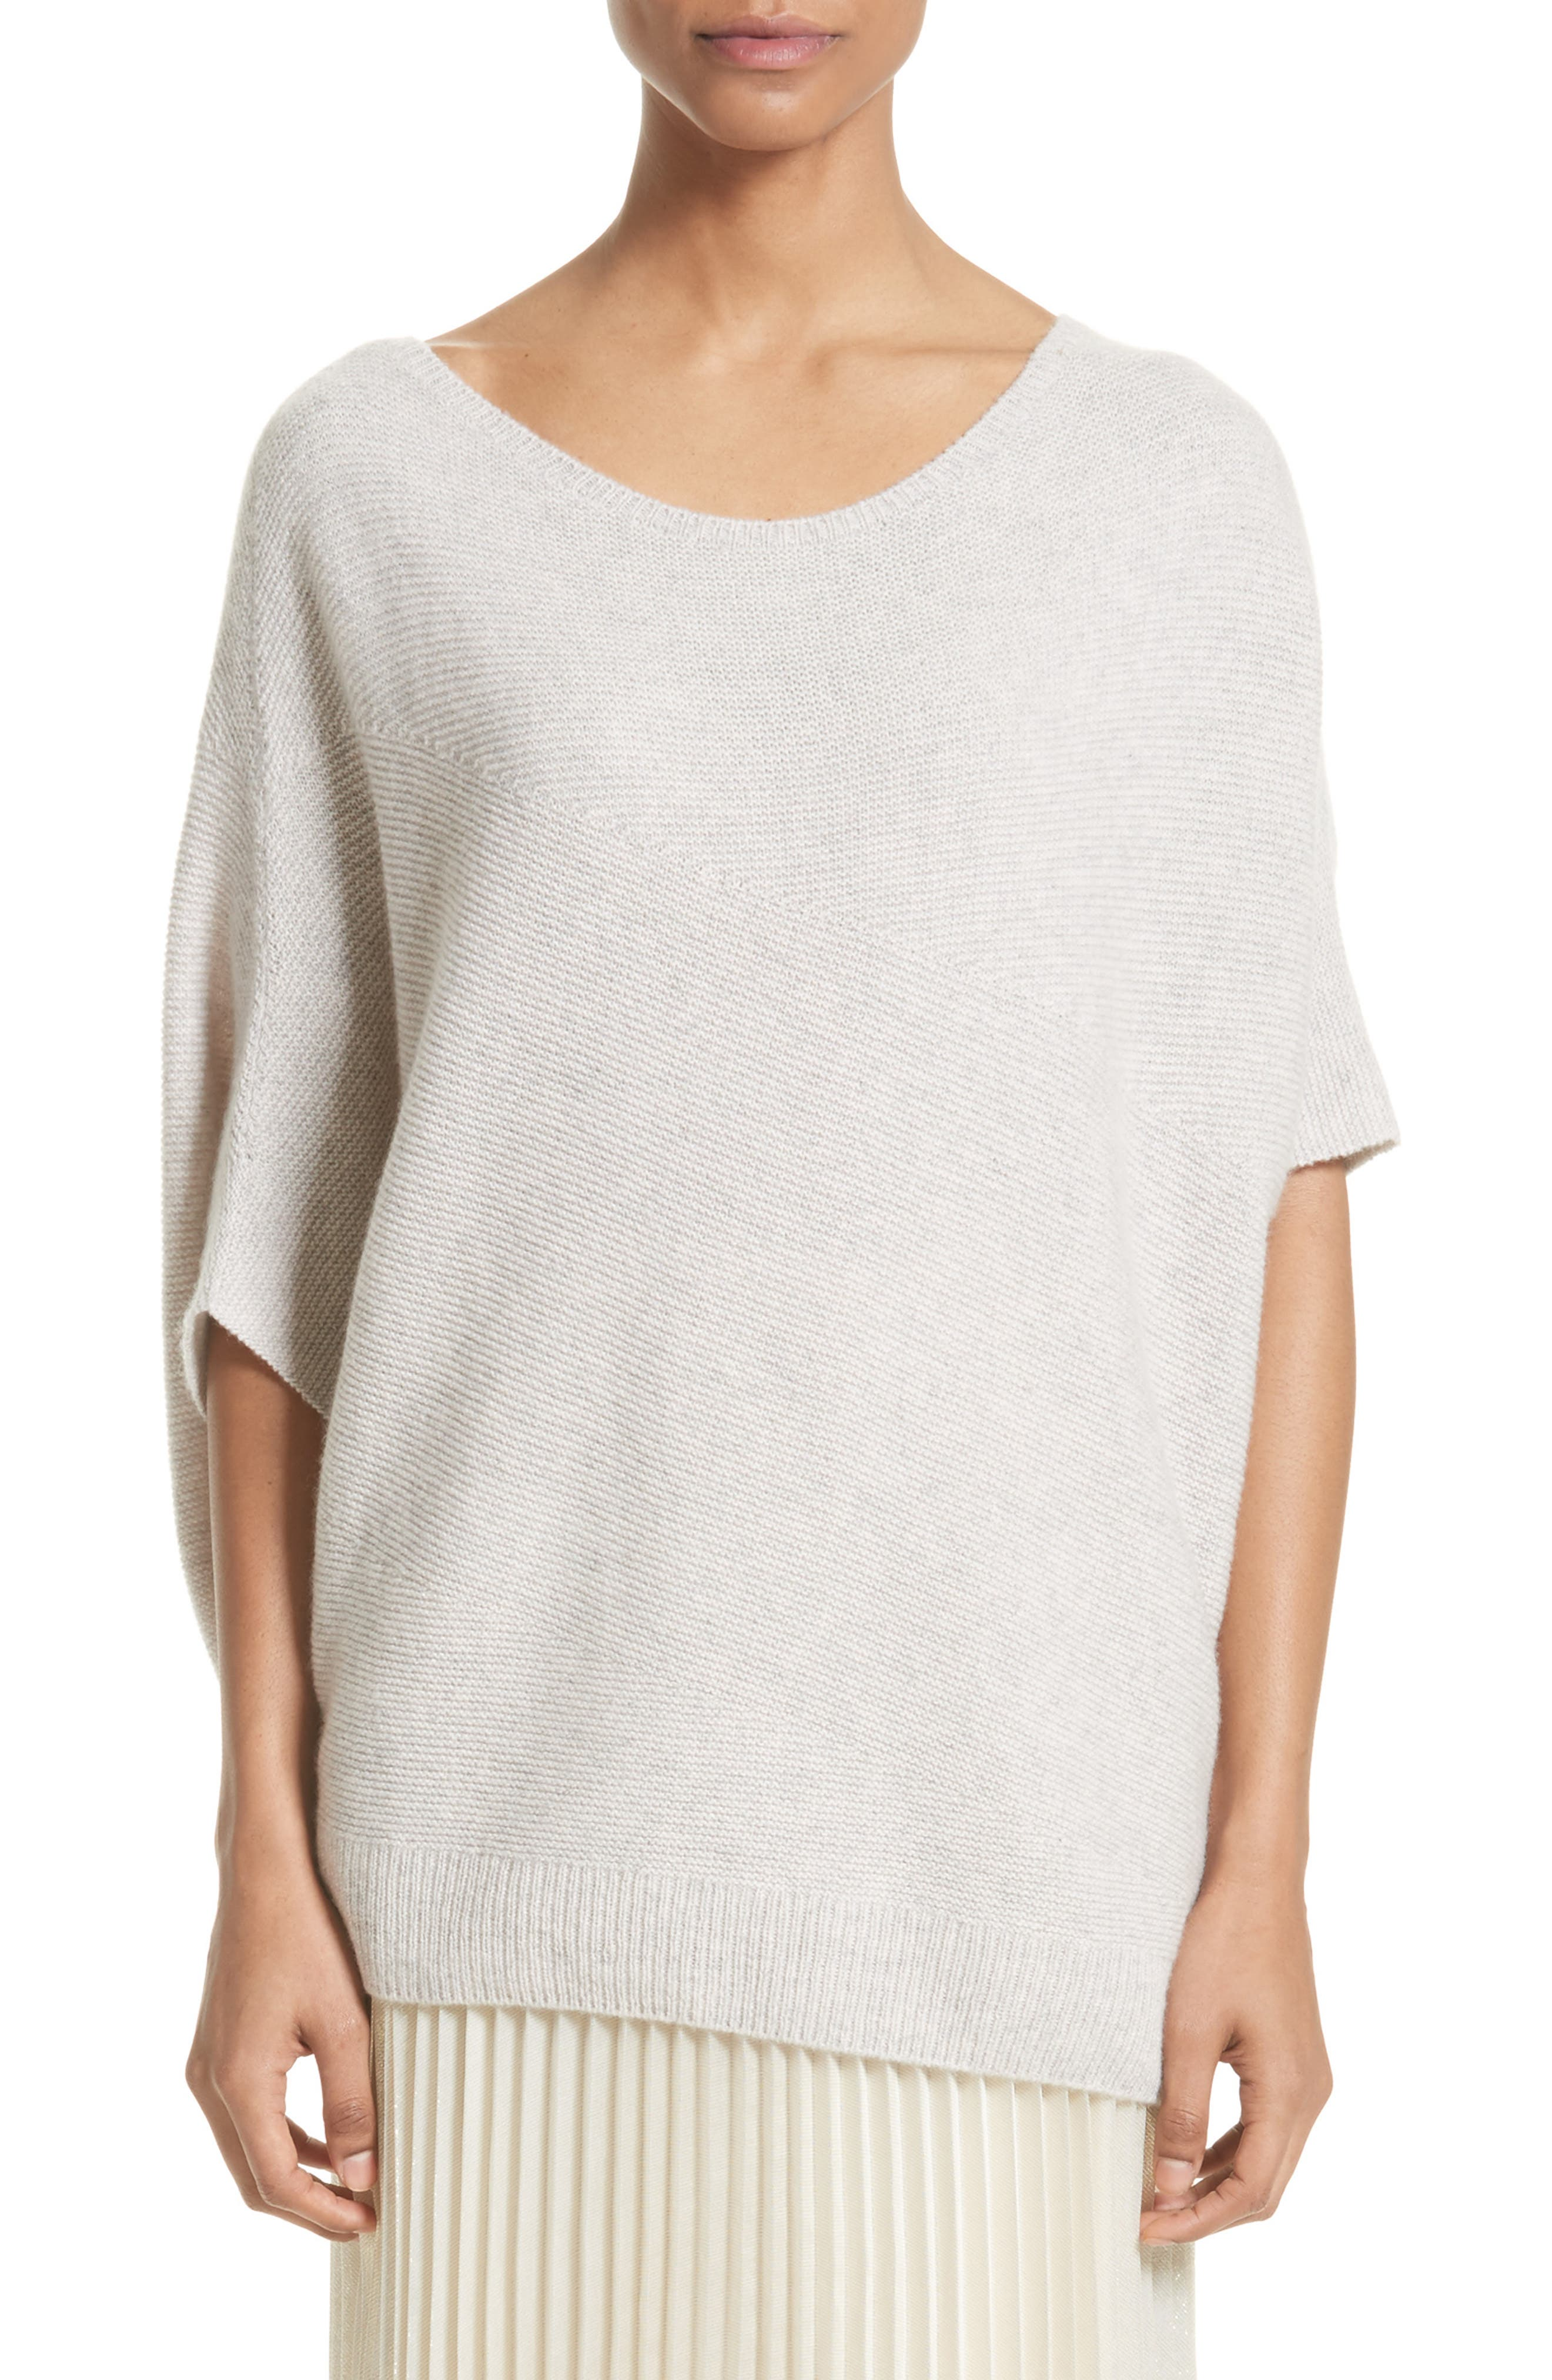 Cashmere Asymmetrical Sweater,                             Main thumbnail 1, color,                             680